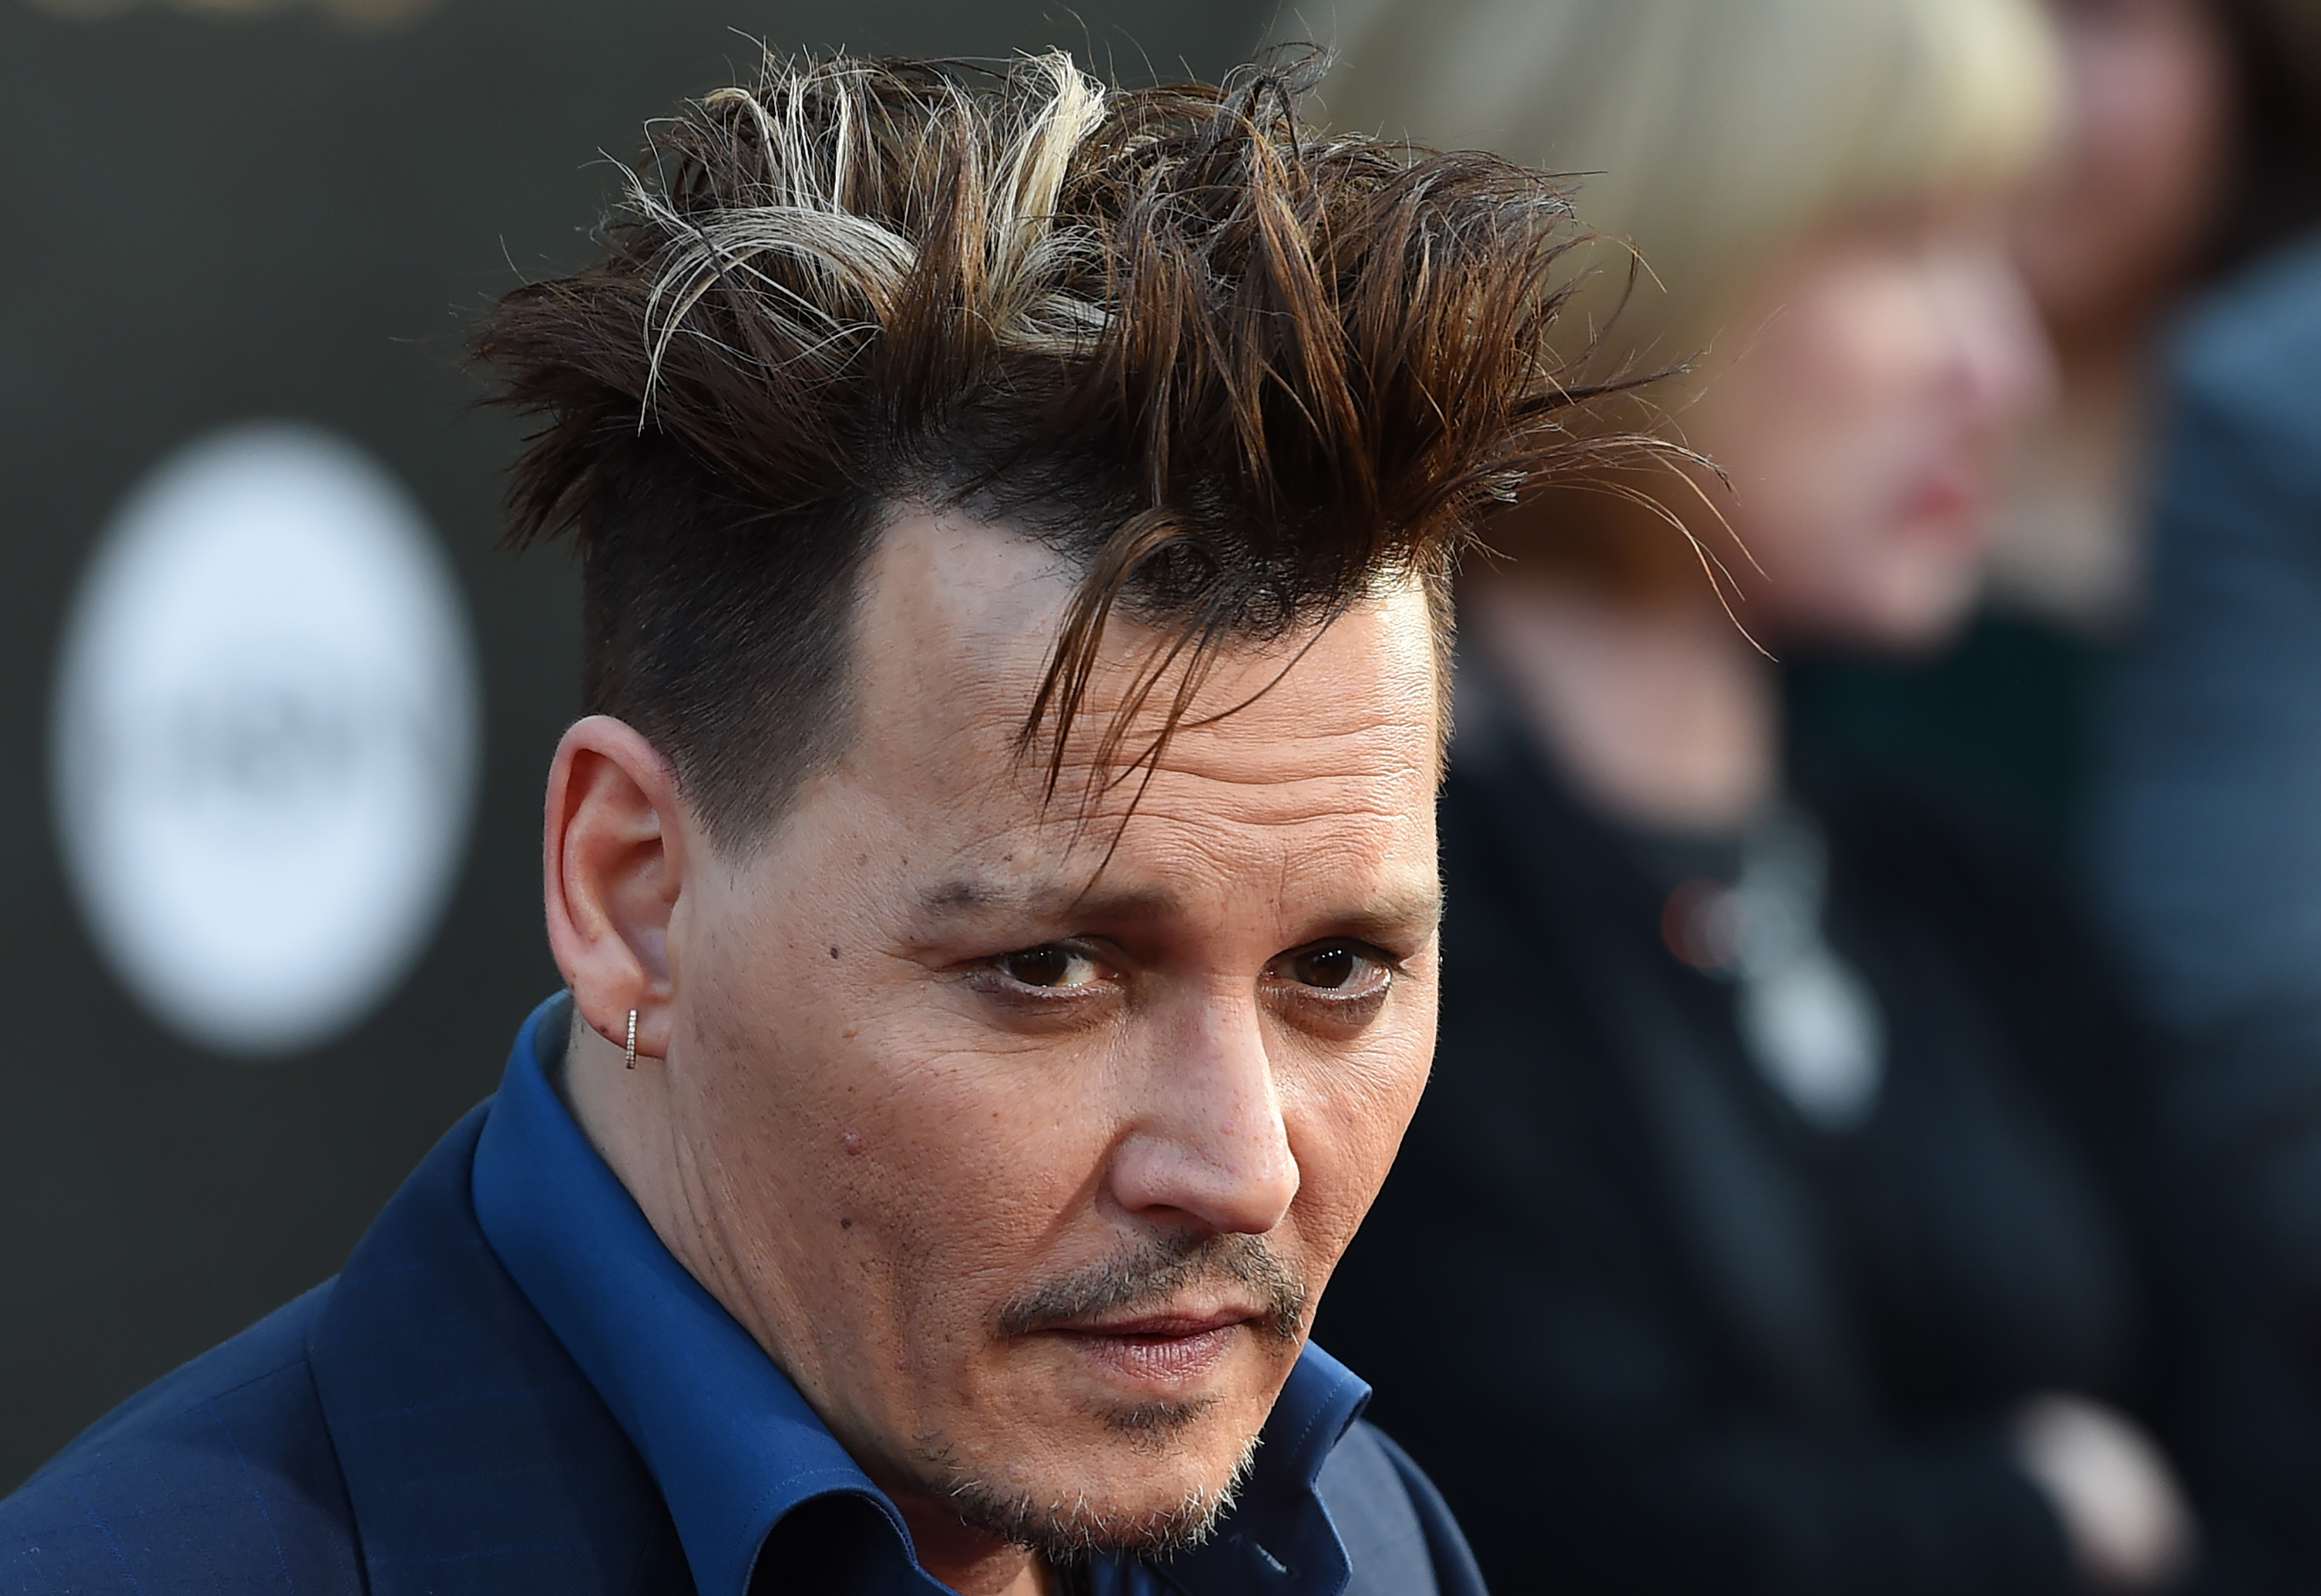 Johnny Depp Transforme Son Tatouage D Amour A Amber Heard En Insulte